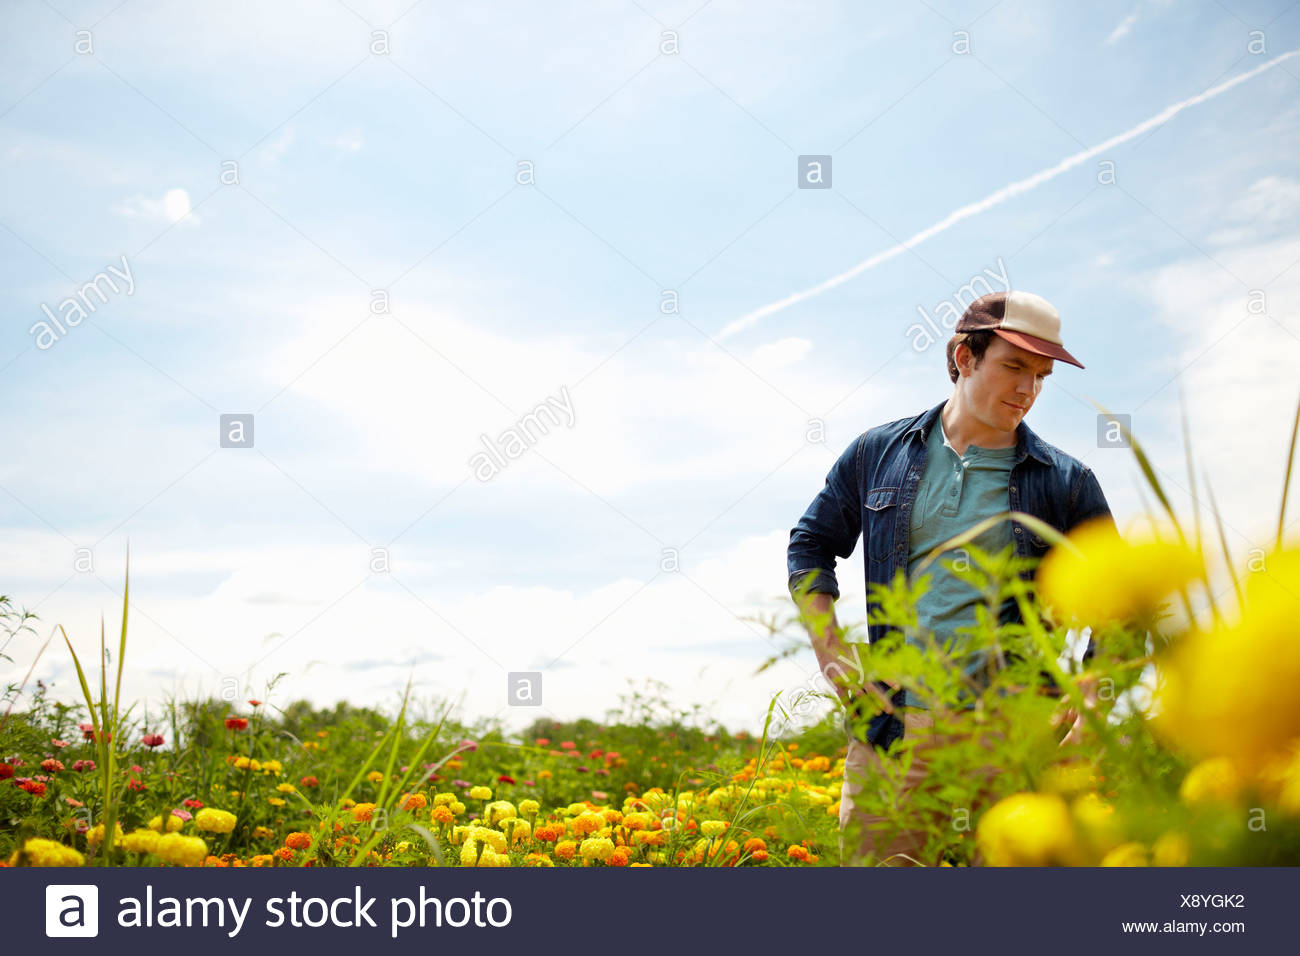 A farmer working in his fields in New York State. A yellow and orange organically grown flower crop. - Stock Image